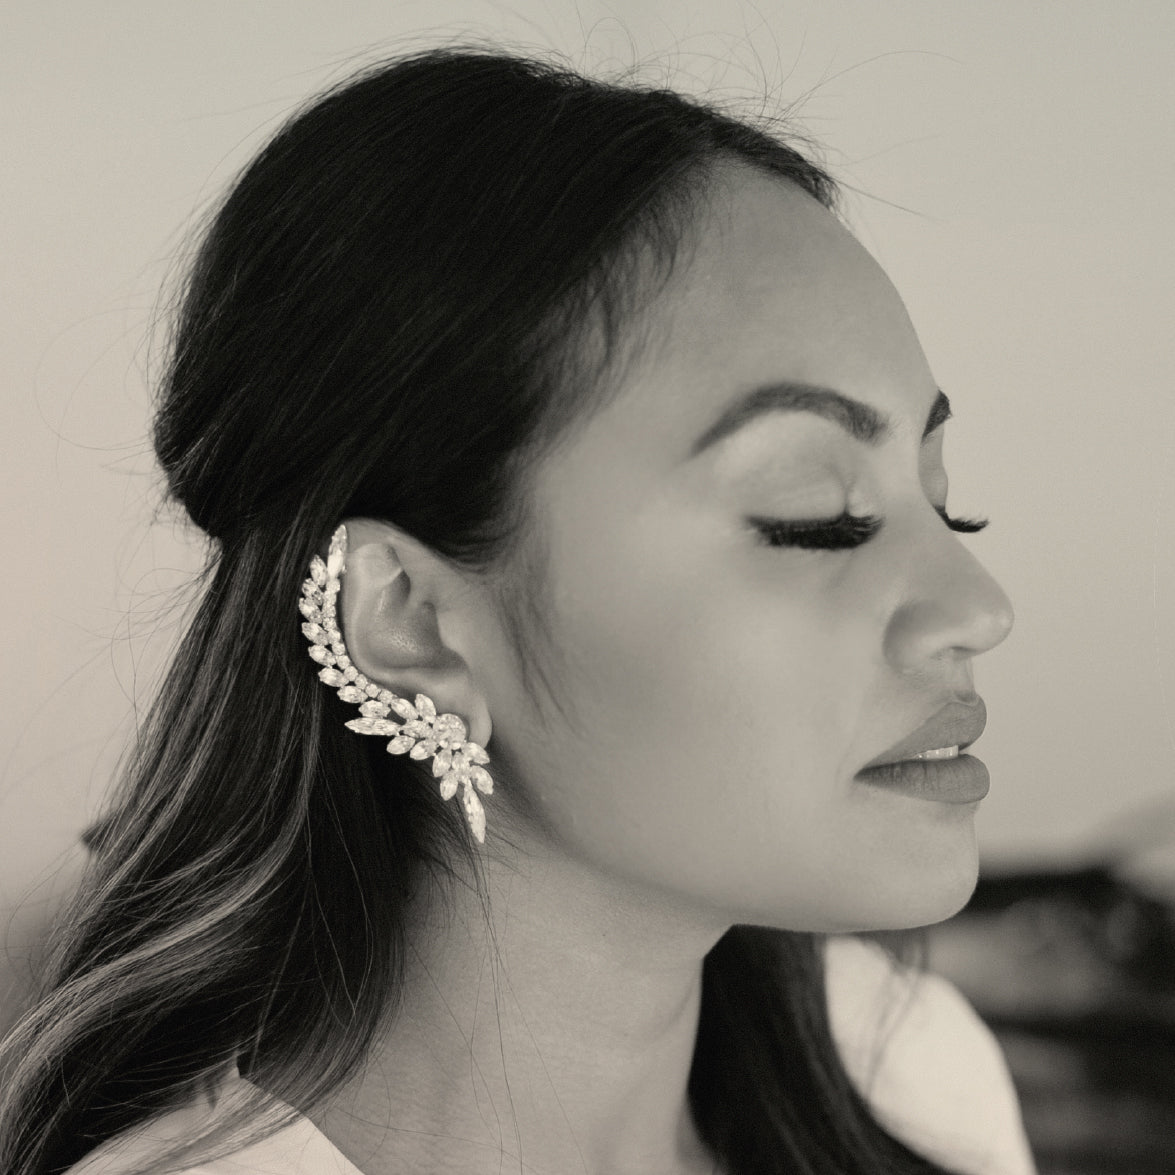 Singer Jessica Mauboy wears Sarina Suriano Aries Charm crystal ear cuff and stud